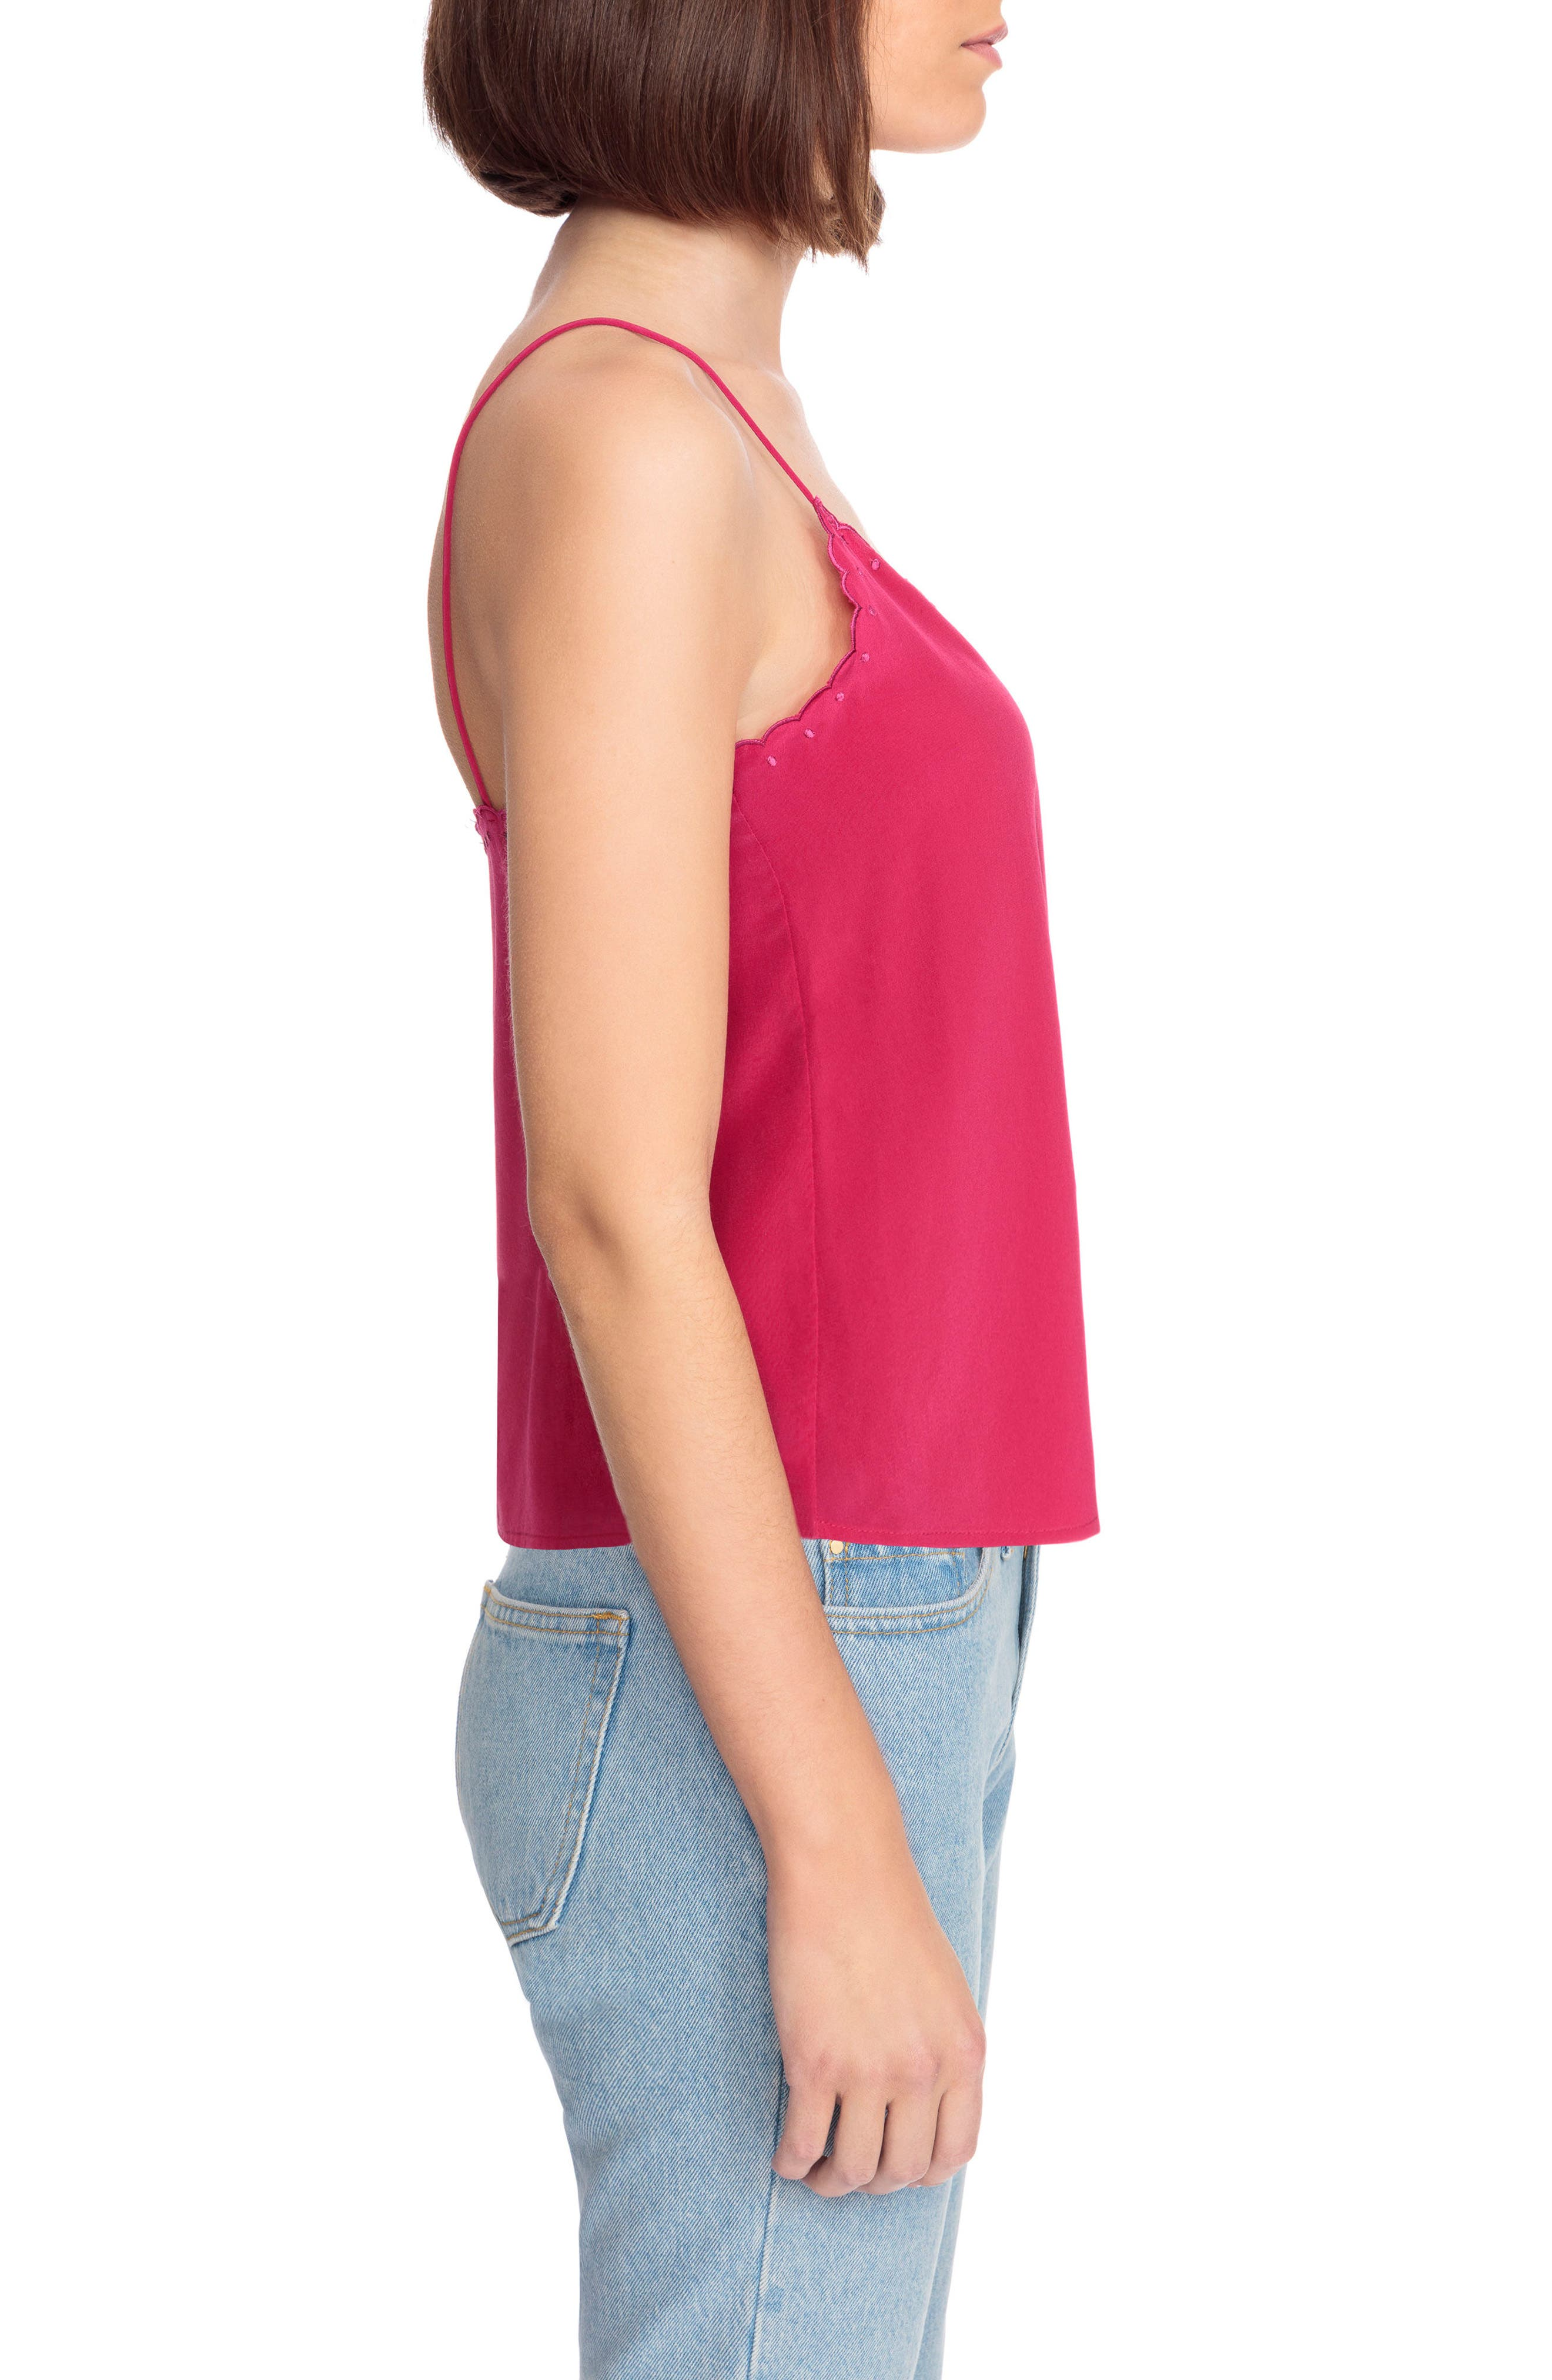 Athenee Scalloped Silk Camisole,                             Alternate thumbnail 4, color,                             Bright Pink